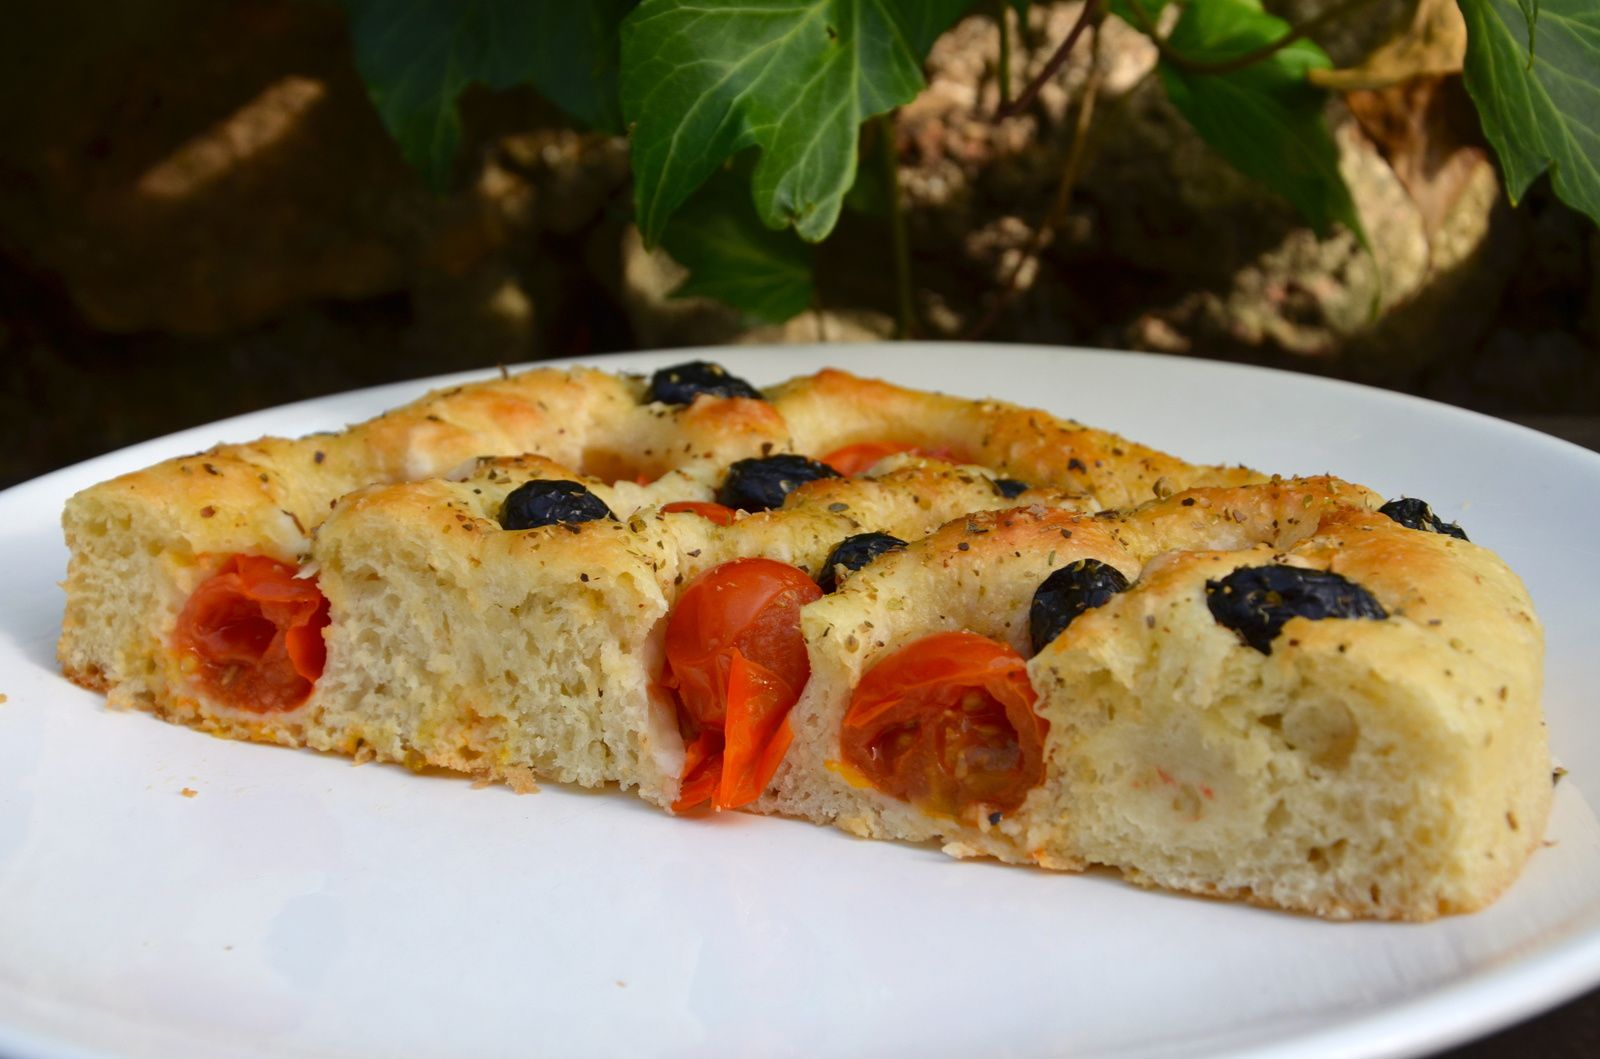 focaccia pugliese aux tomates et olives la p 39 tite cuisine de pauline. Black Bedroom Furniture Sets. Home Design Ideas